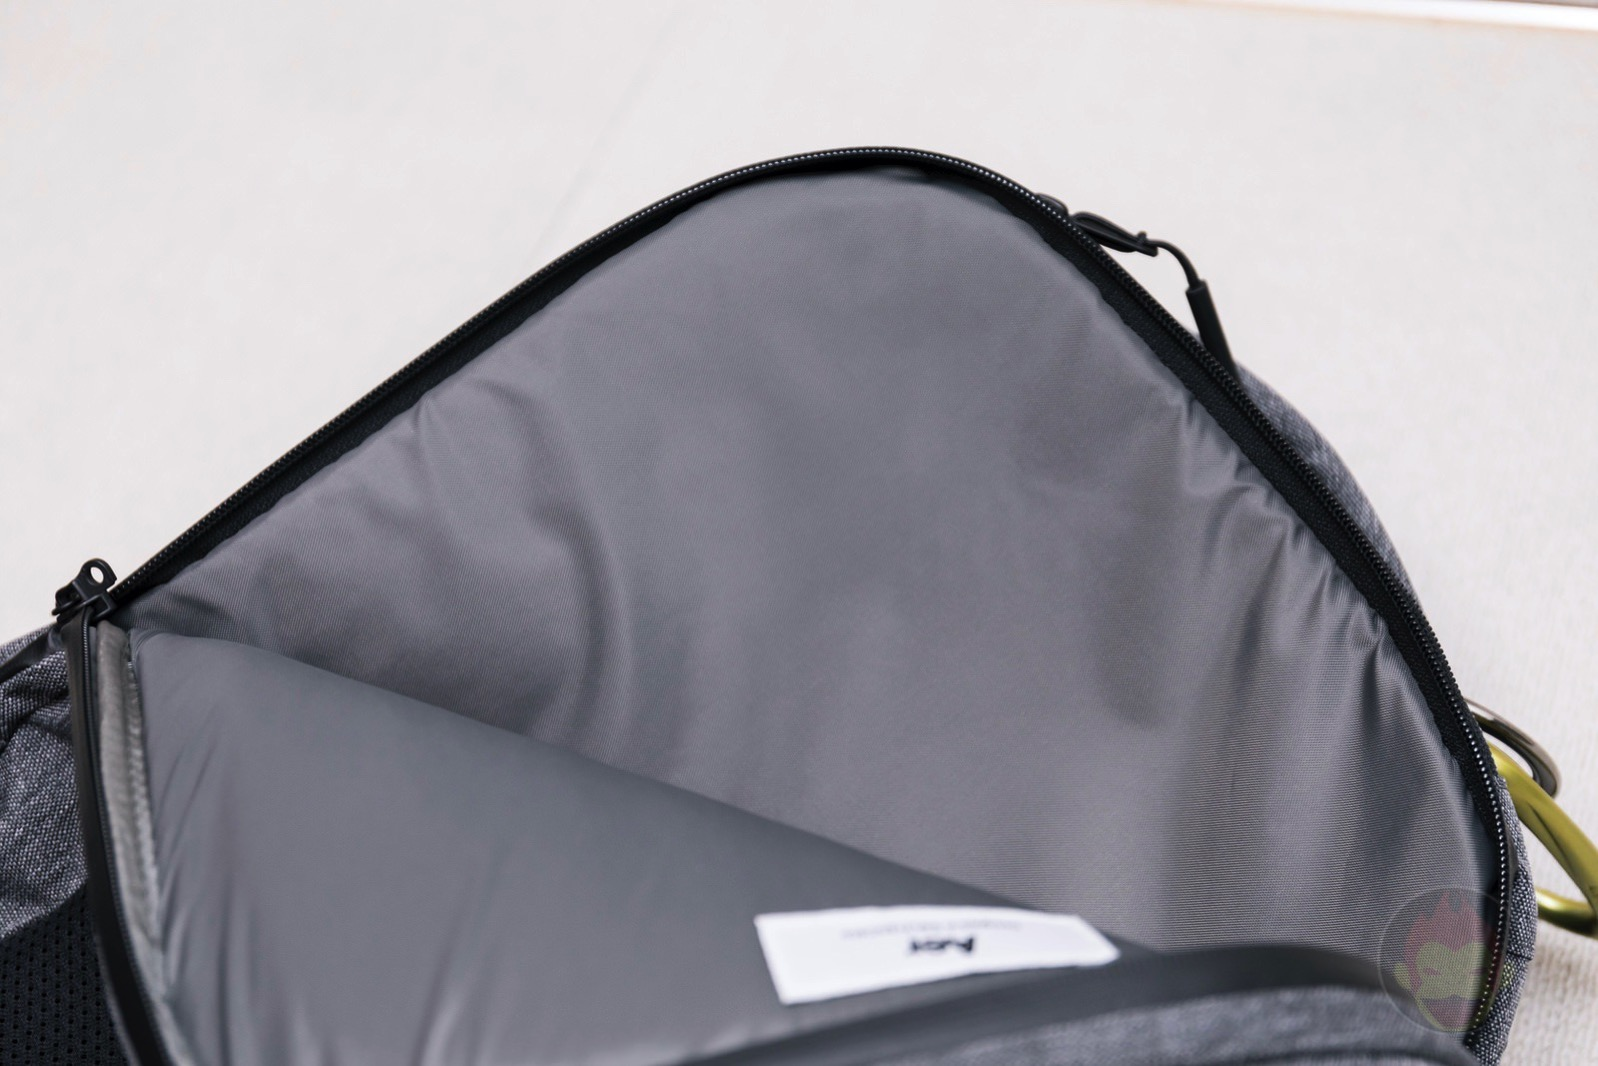 Aer Travel Pack 2 Backpack Review 33